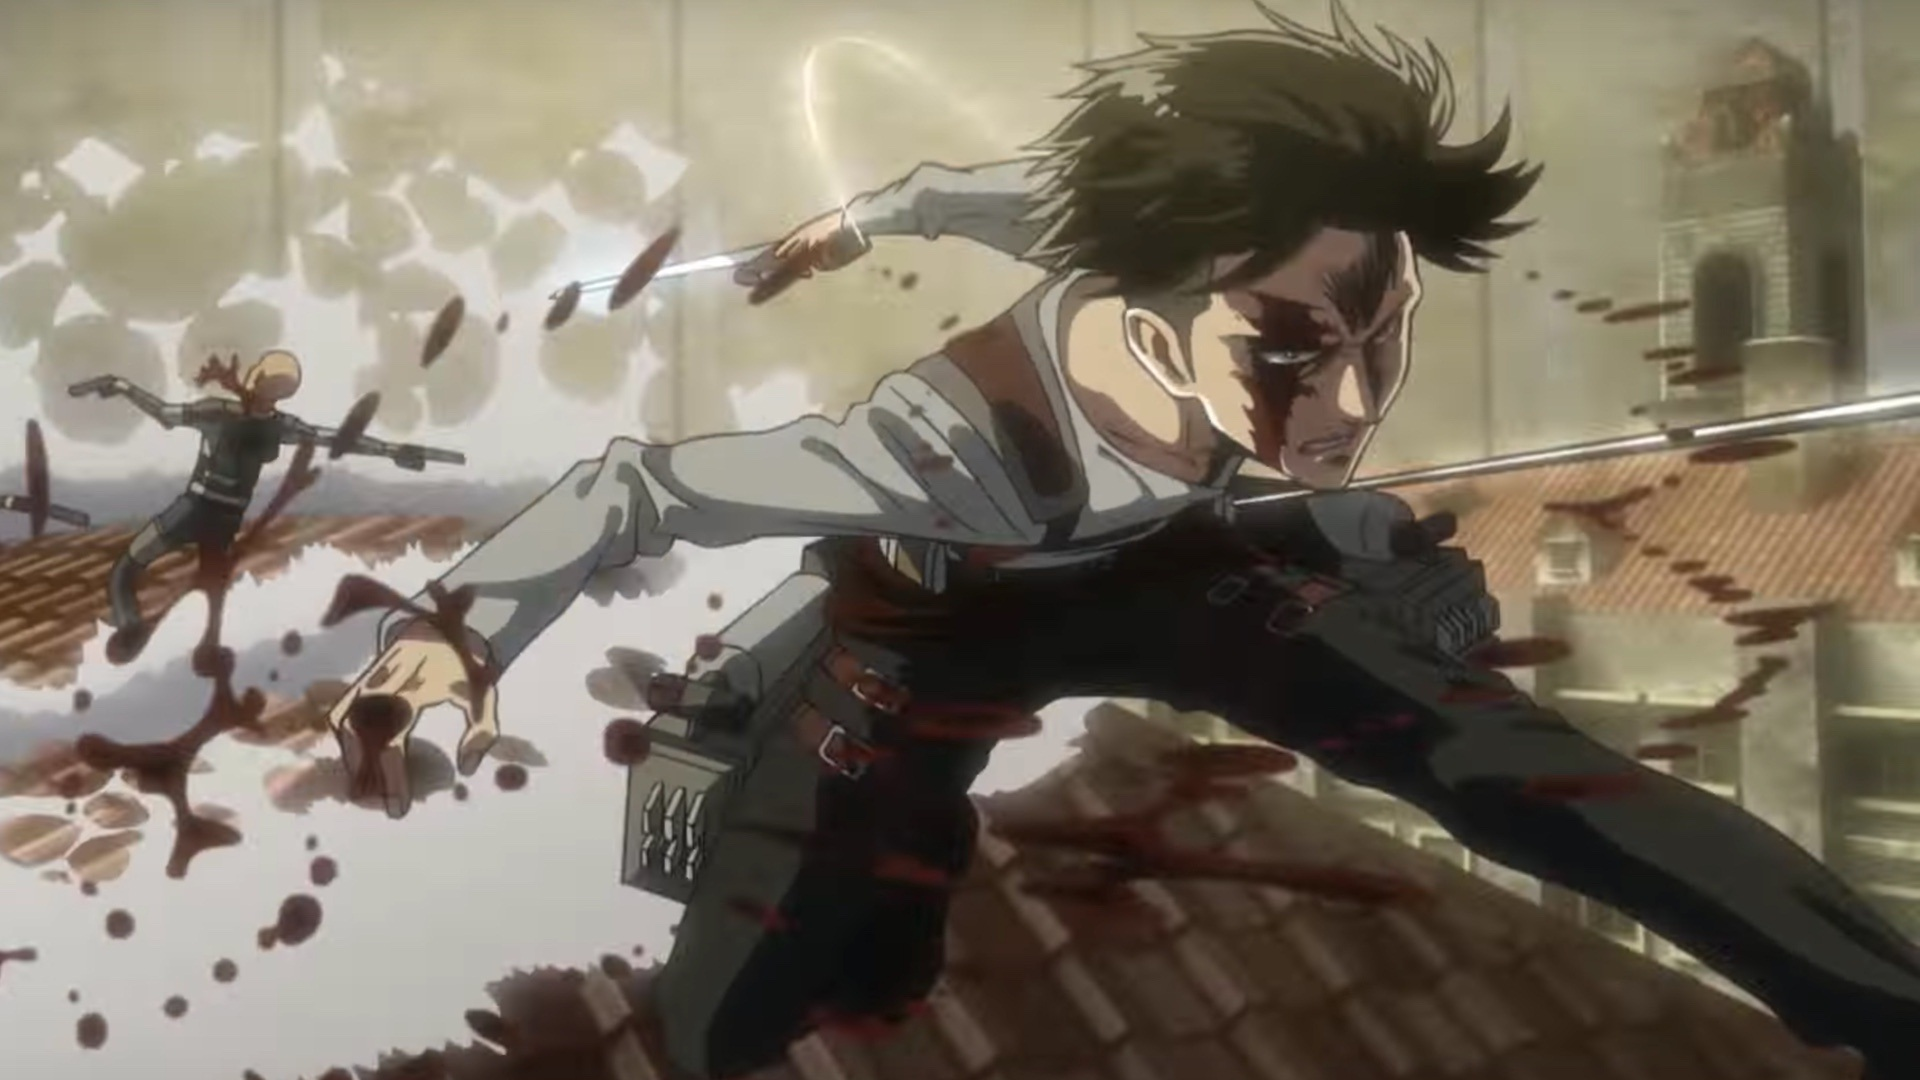 Shingeki No Kyojin Wallpaper 4k Pc Gambar Ngetrend Dan Viral